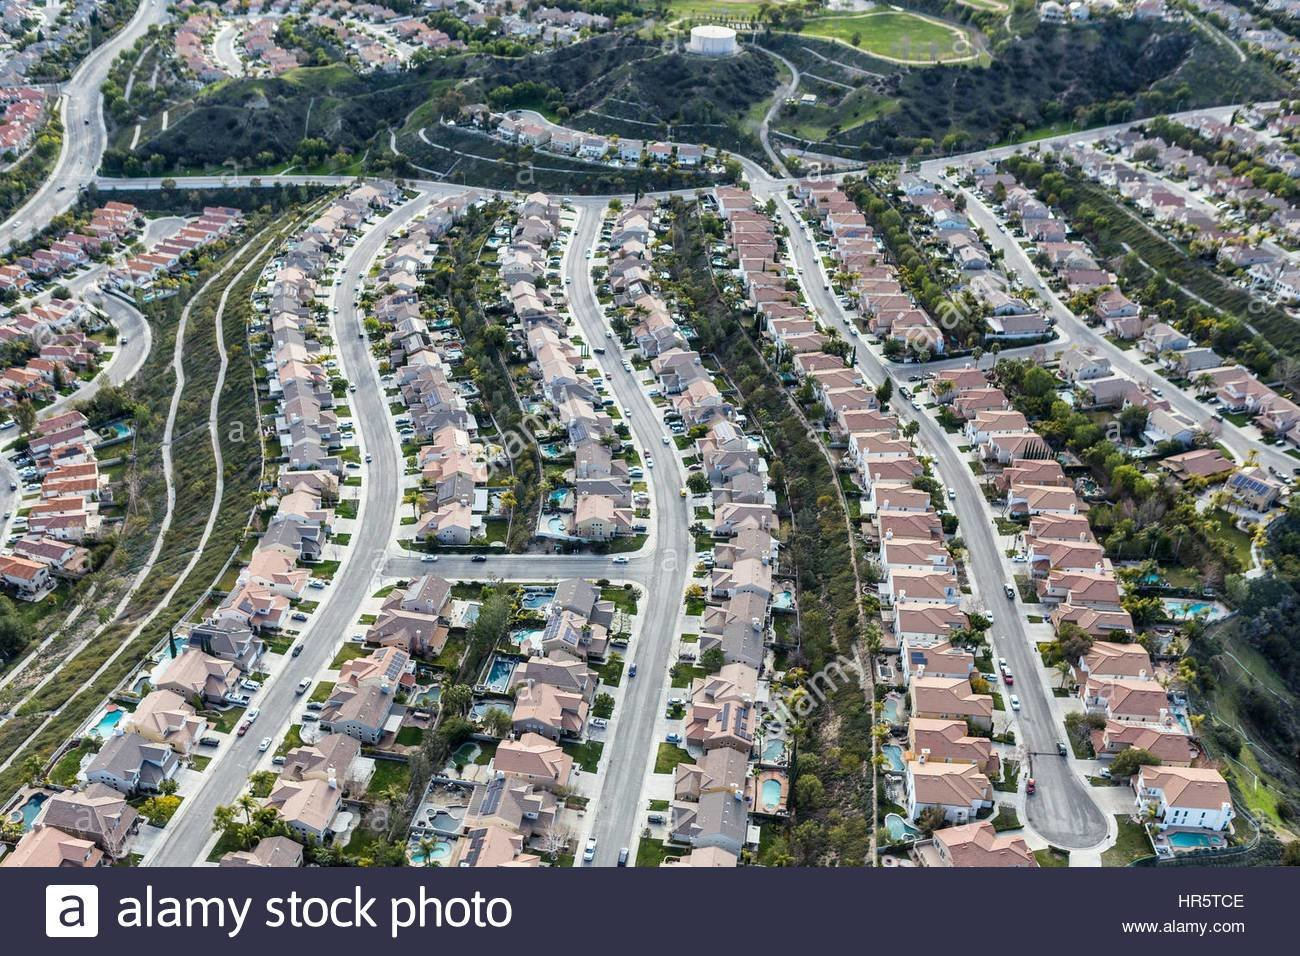 Best Aerial View Of Suburban Stevenson Ranch Bedroom Community In Los Stock Photo Royalty Free Image With Pictures